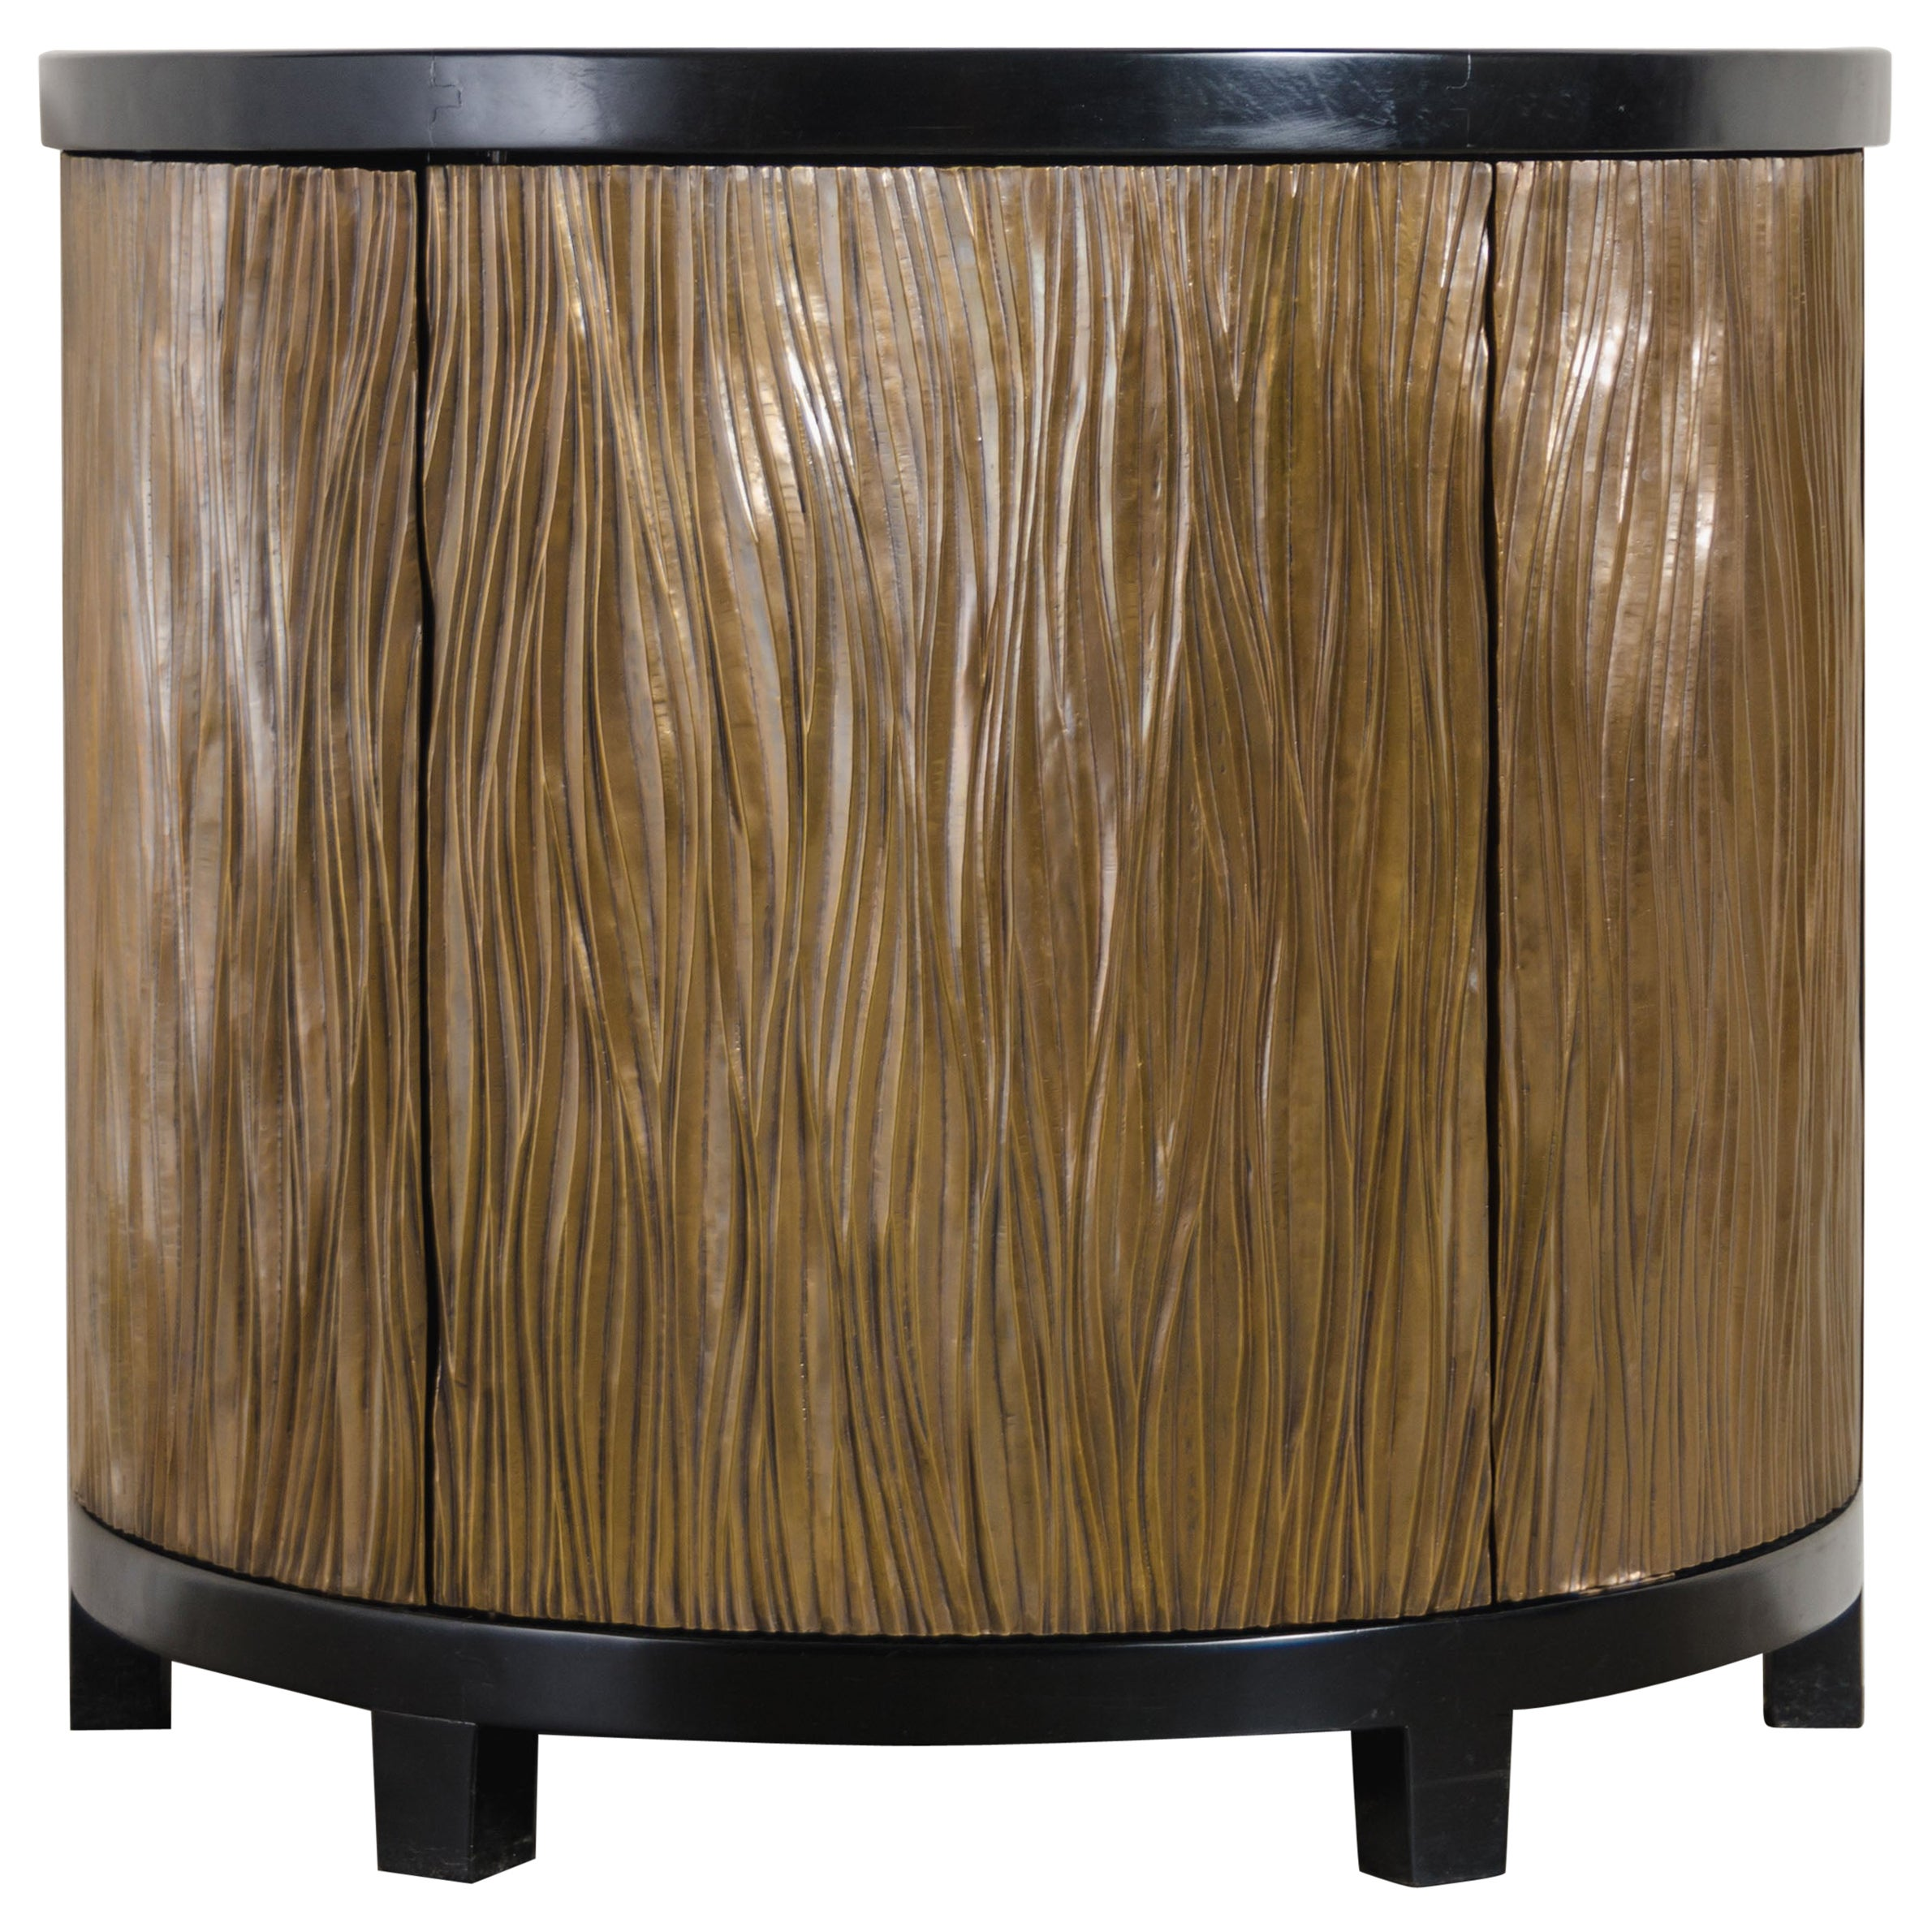 Demilune Cabinet with 3 Pleats Door, Brass by Robert Kuo, Limited Edition